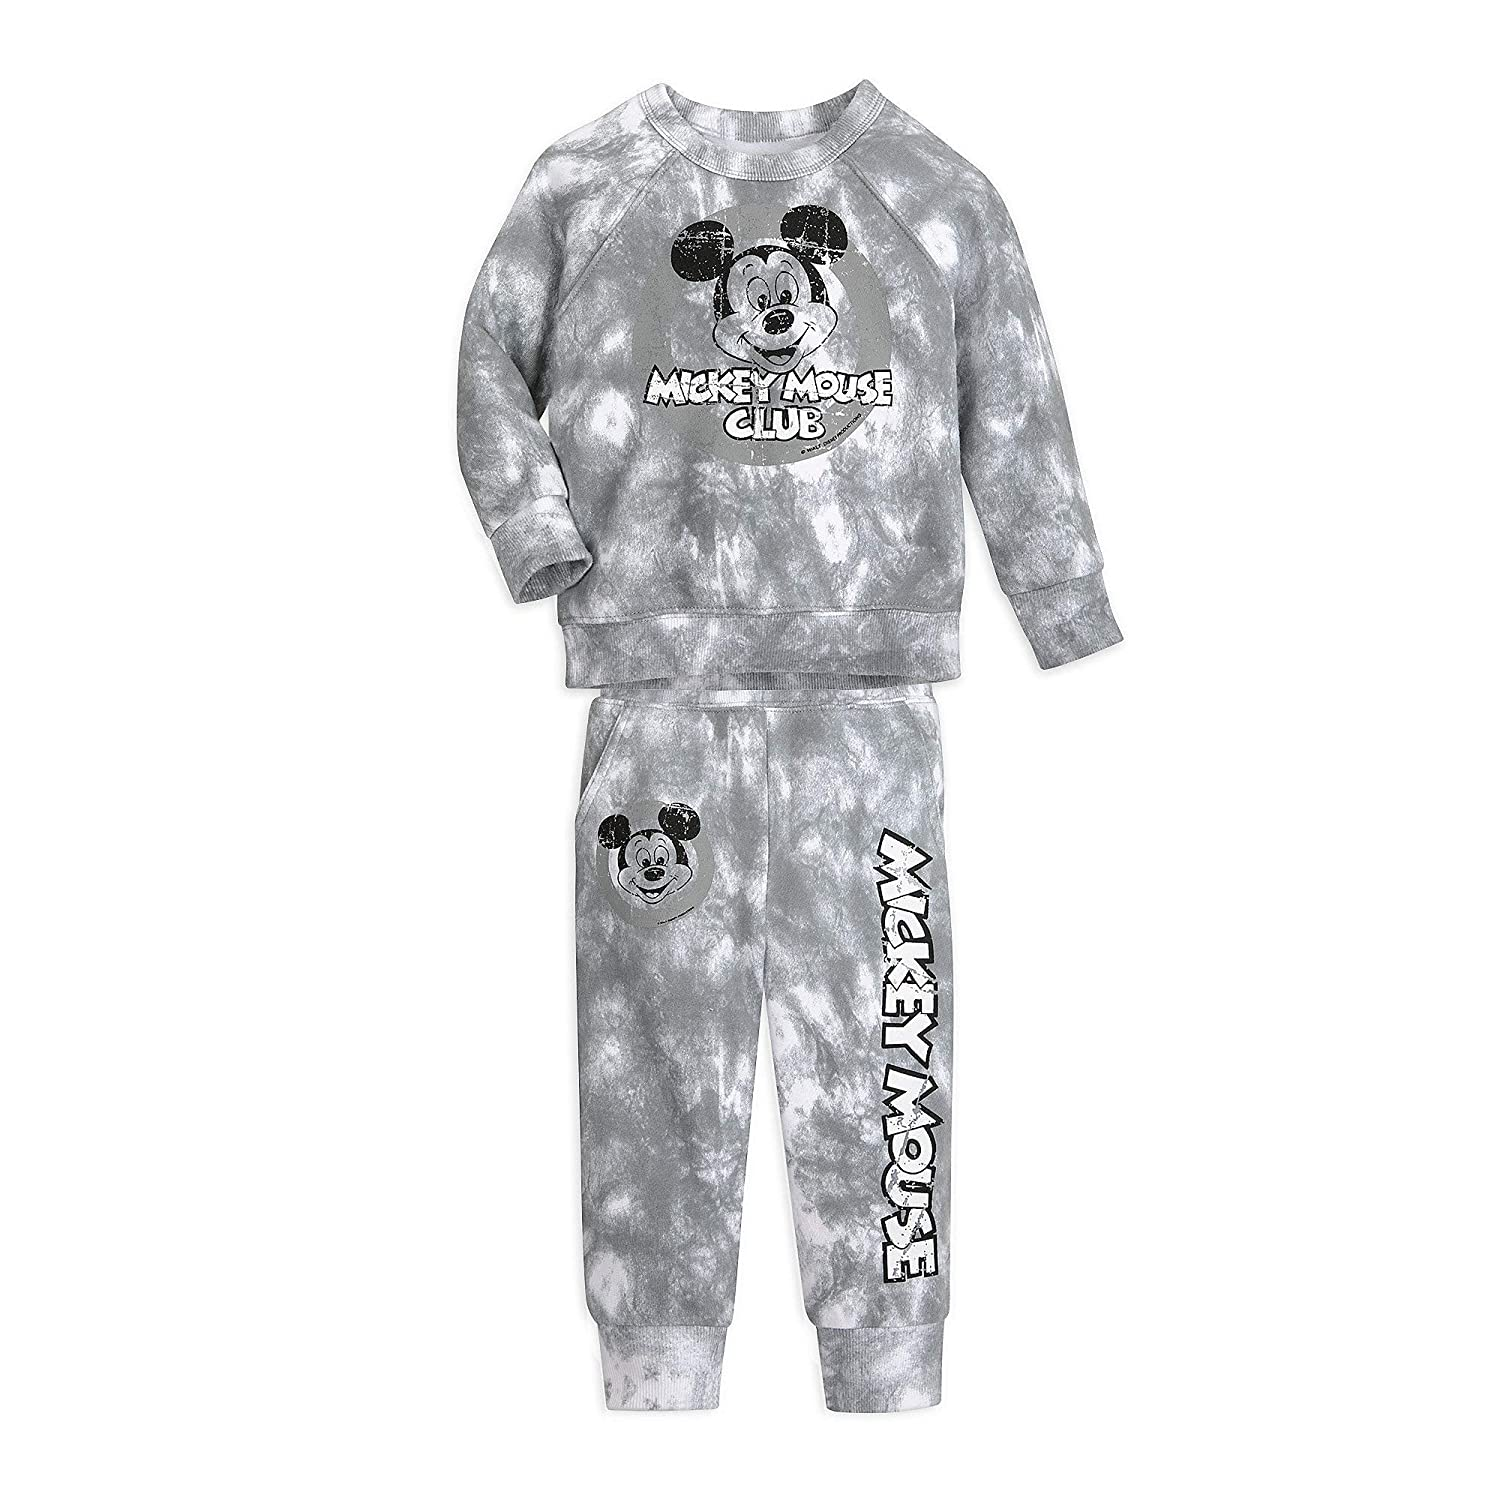 Disney Mickey Mouse Tie-Dye Sweatshirt and Pants Set for Baby, Size 3-6 Months